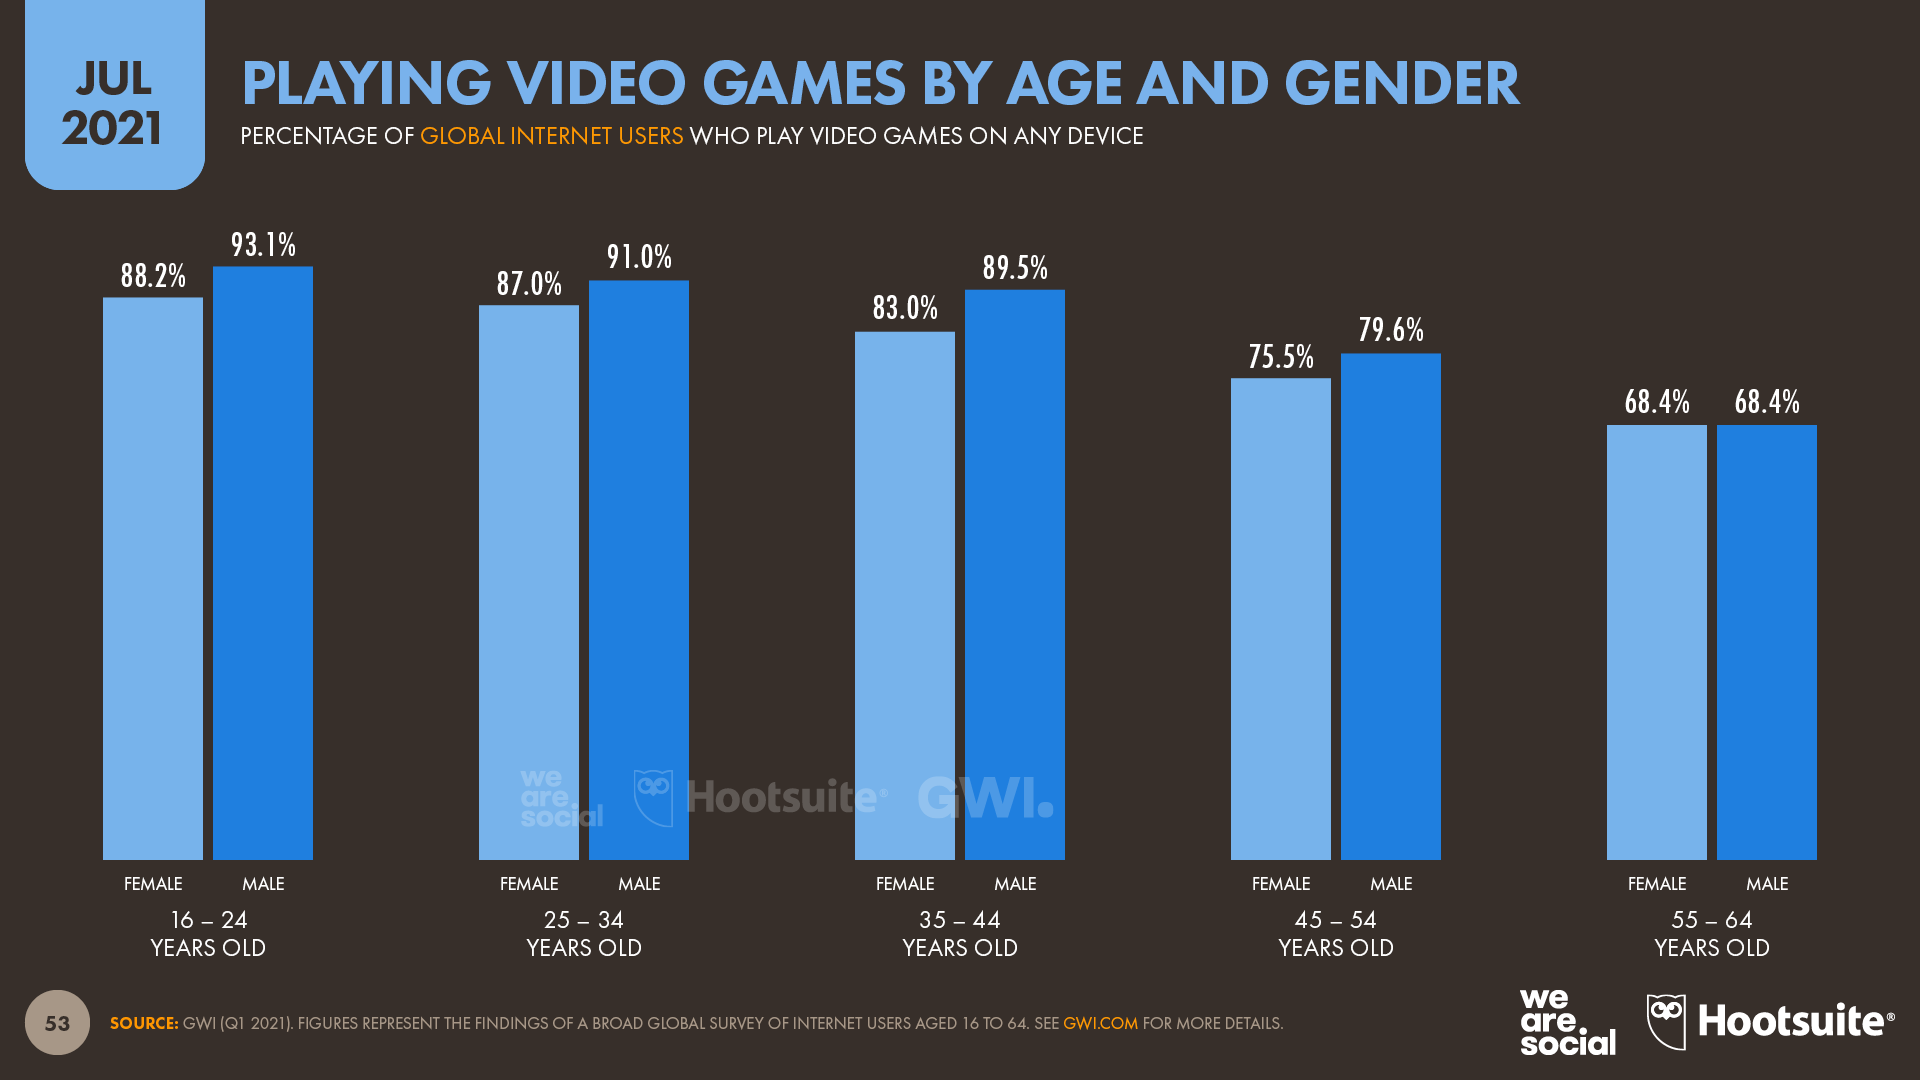 chart showing the activity of playing video games by age and gender as of July 2021